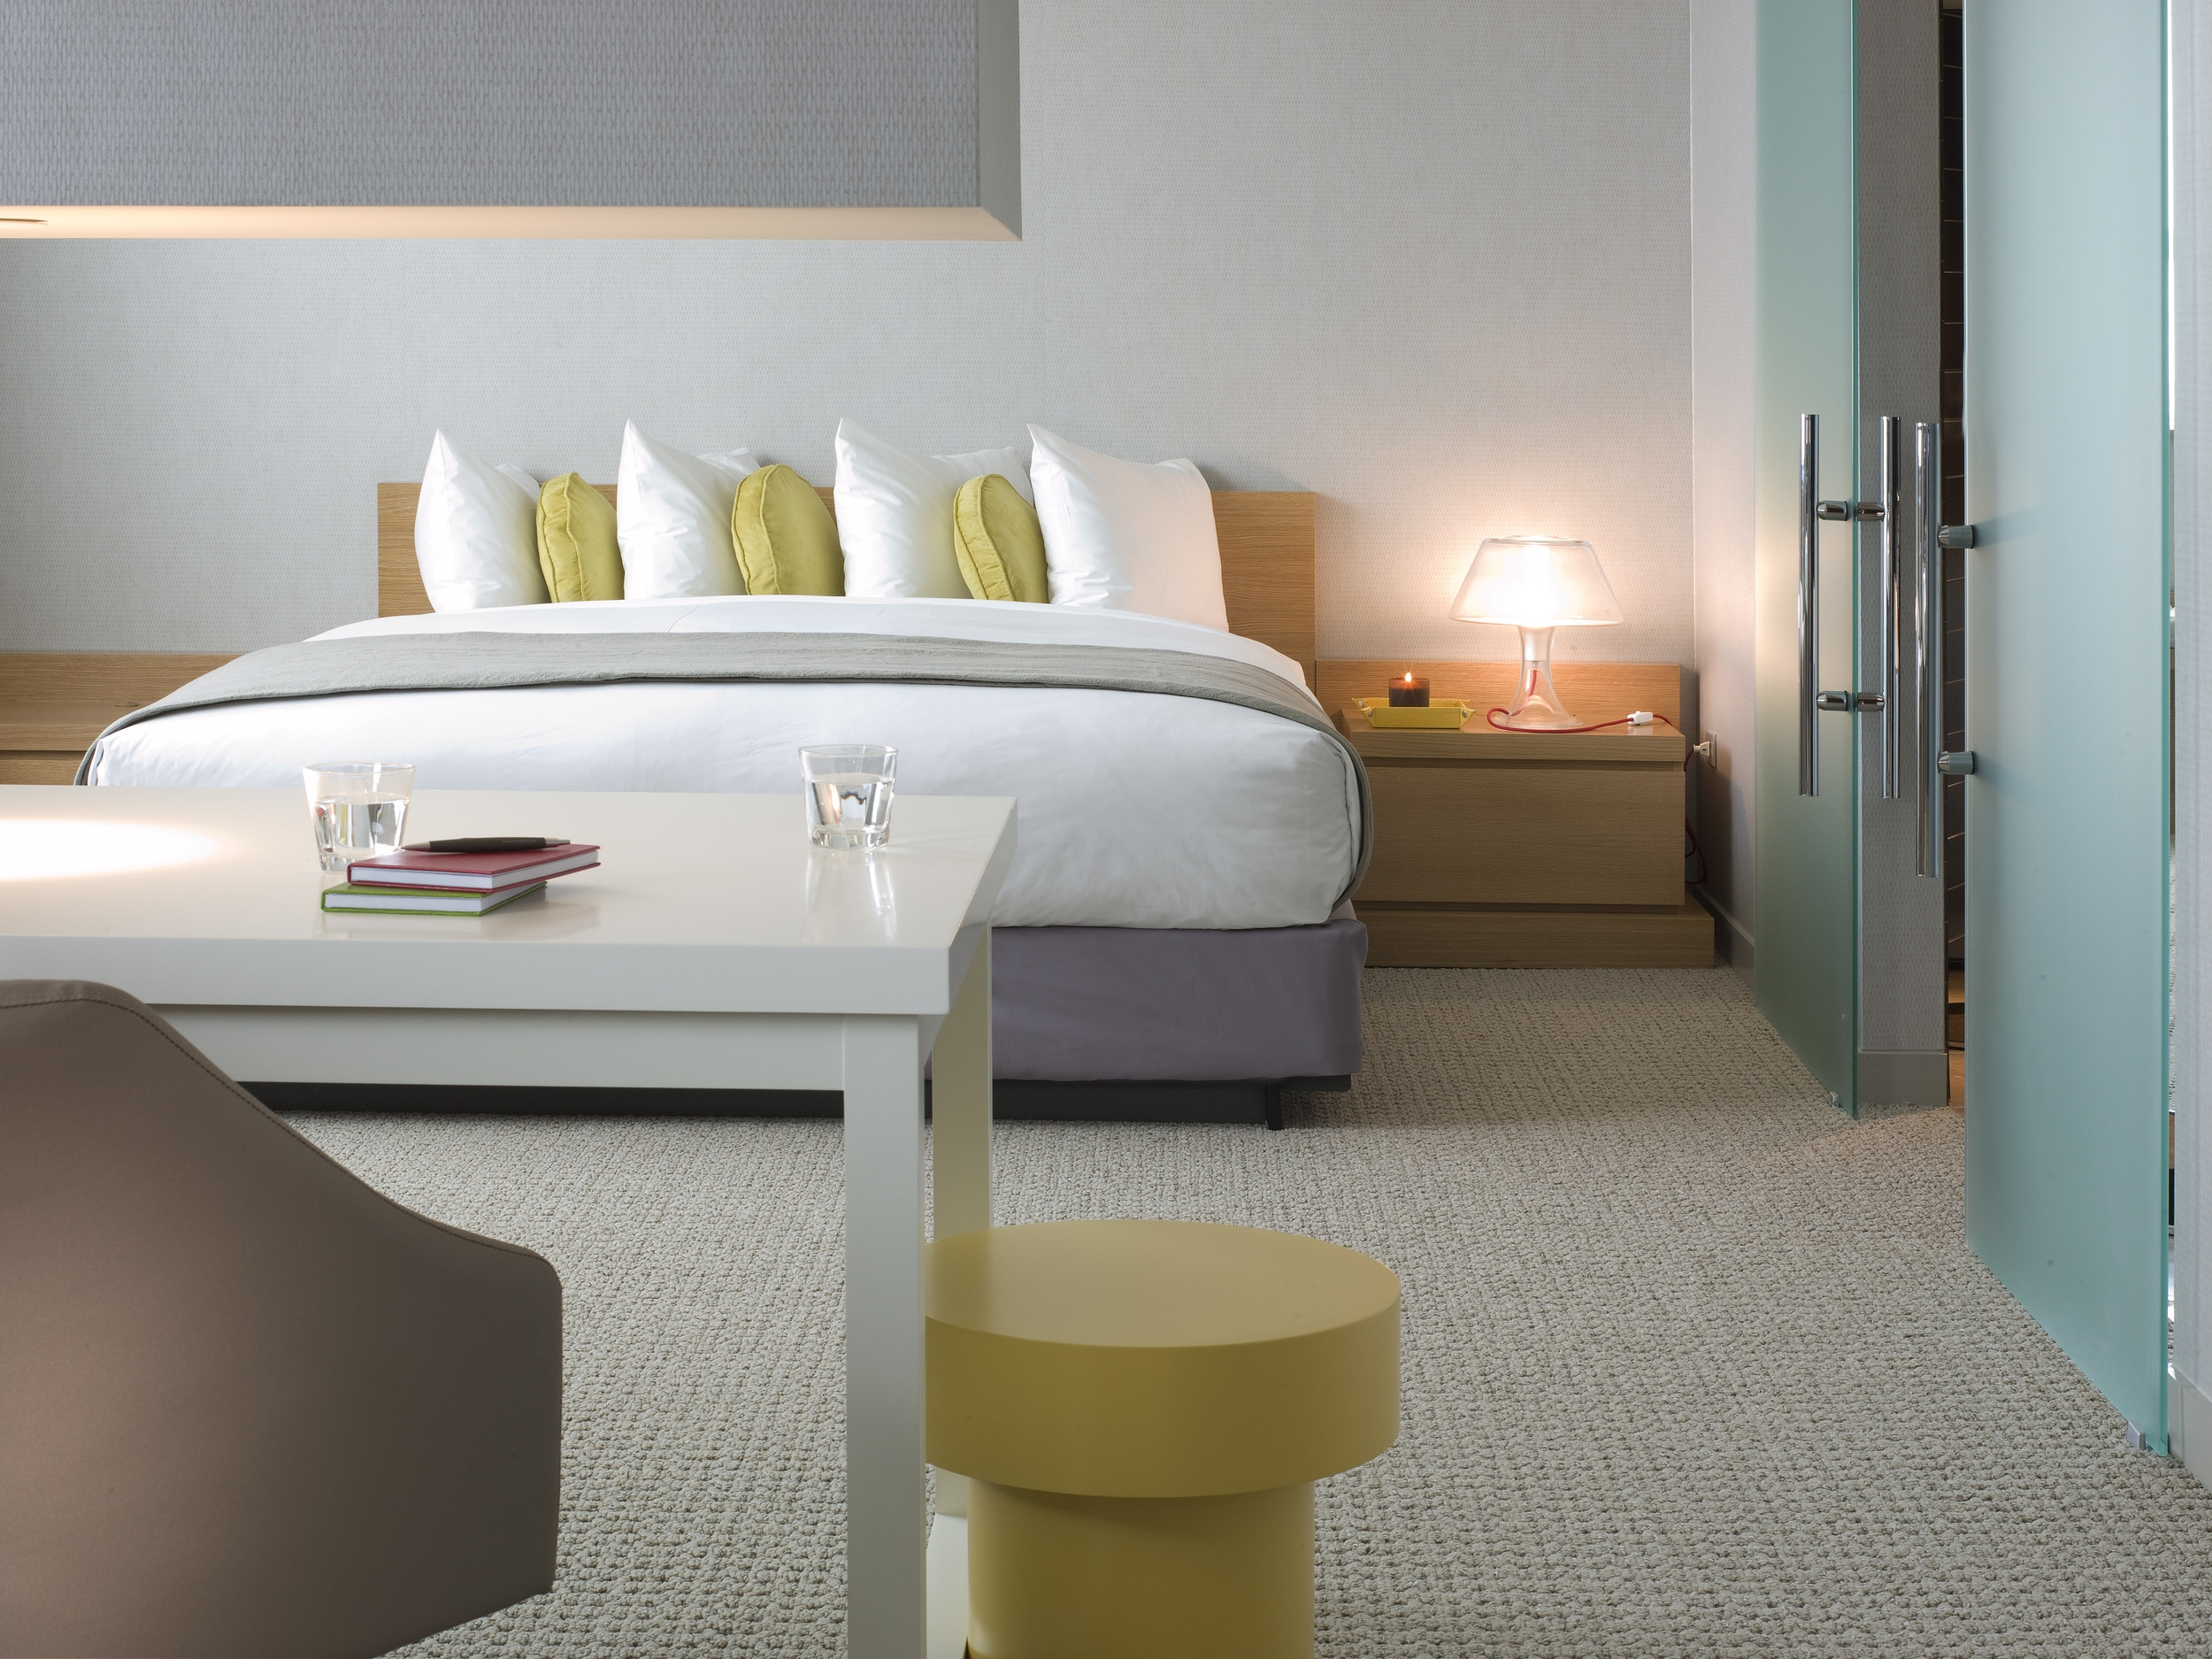 Intercontinental Chicago O'Hare Suite Bedroom